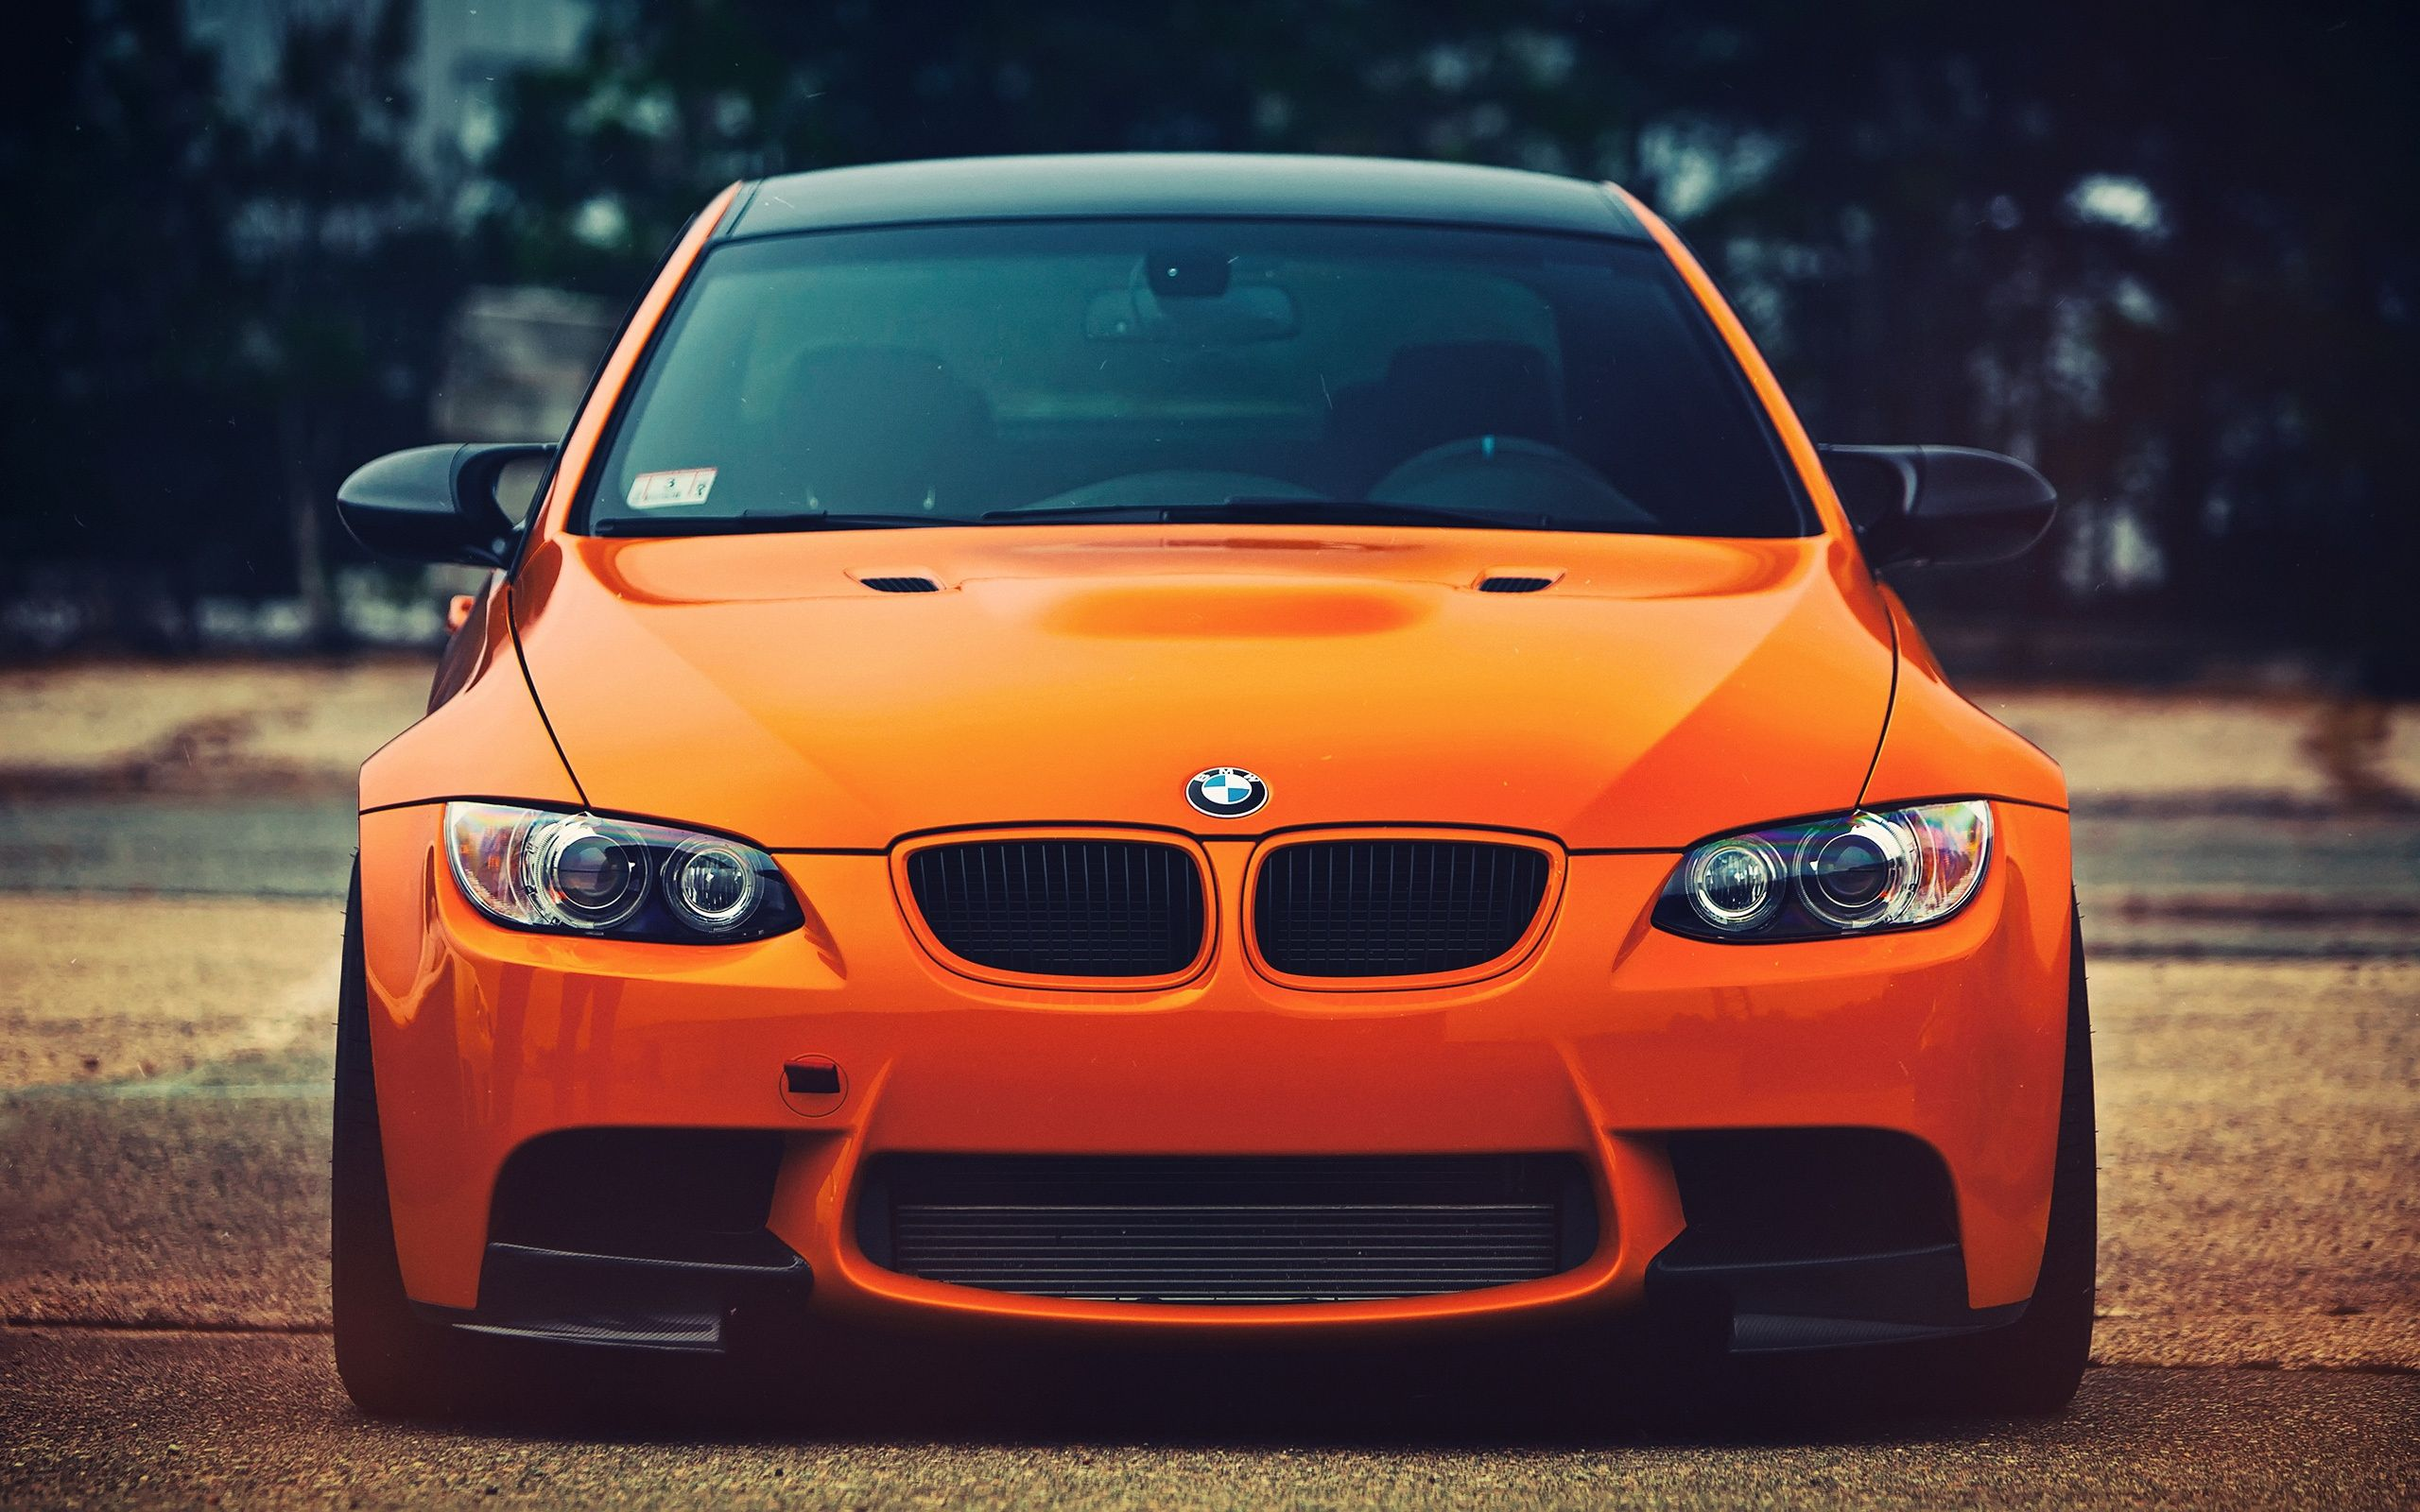 hight resolution of bmw m3 orange car front view wallpapers hd desktop wallpaper